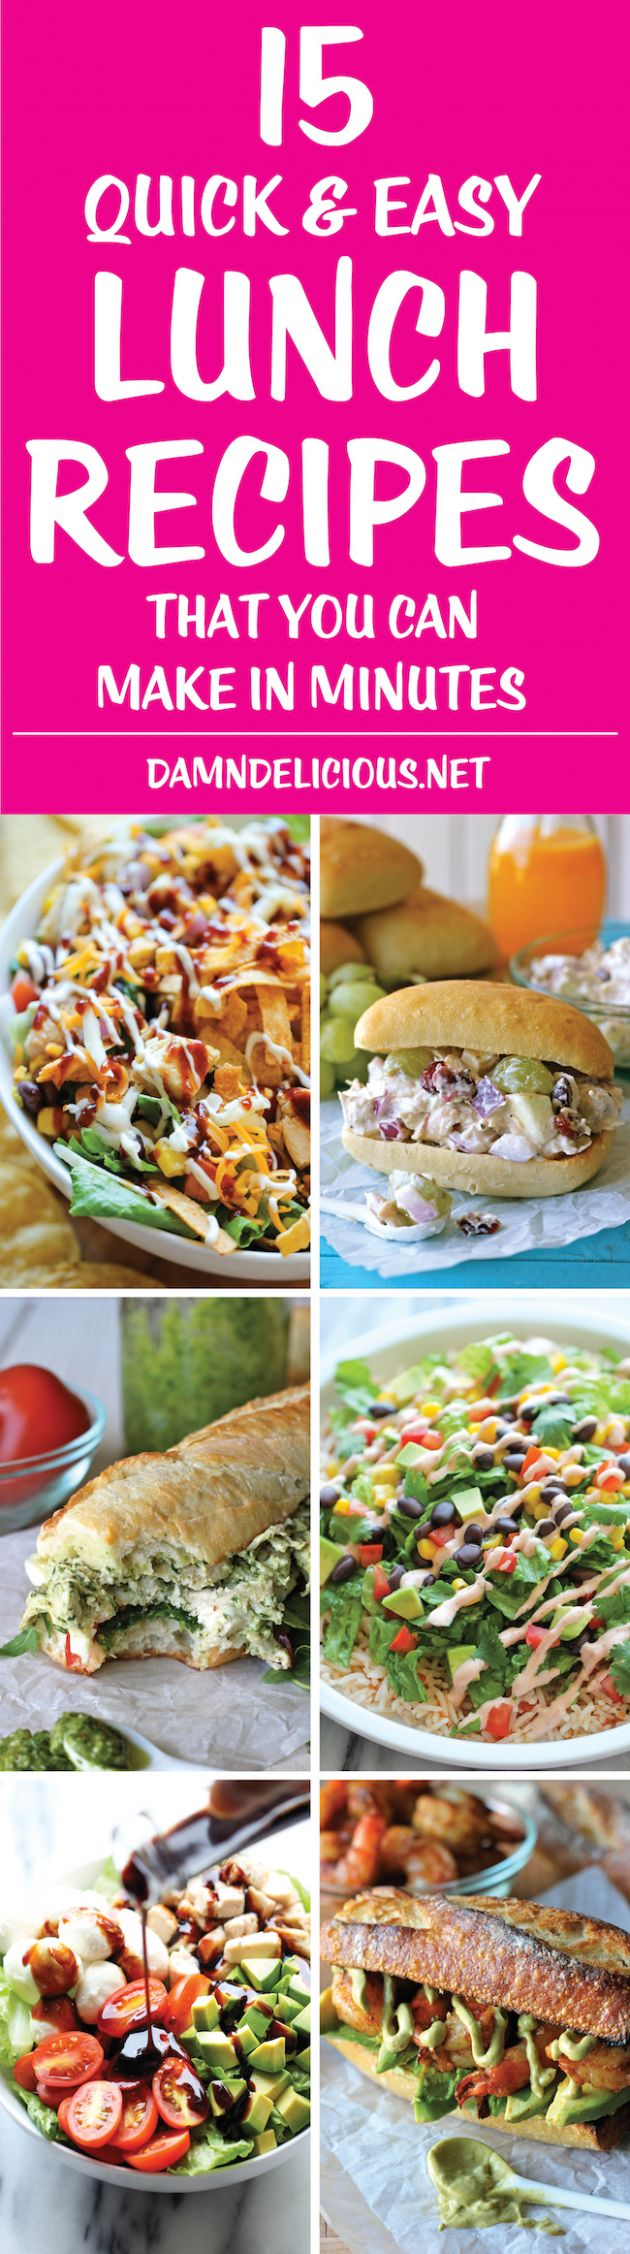 12 Quick and Easy Lunch Recipes - Damn Delicious